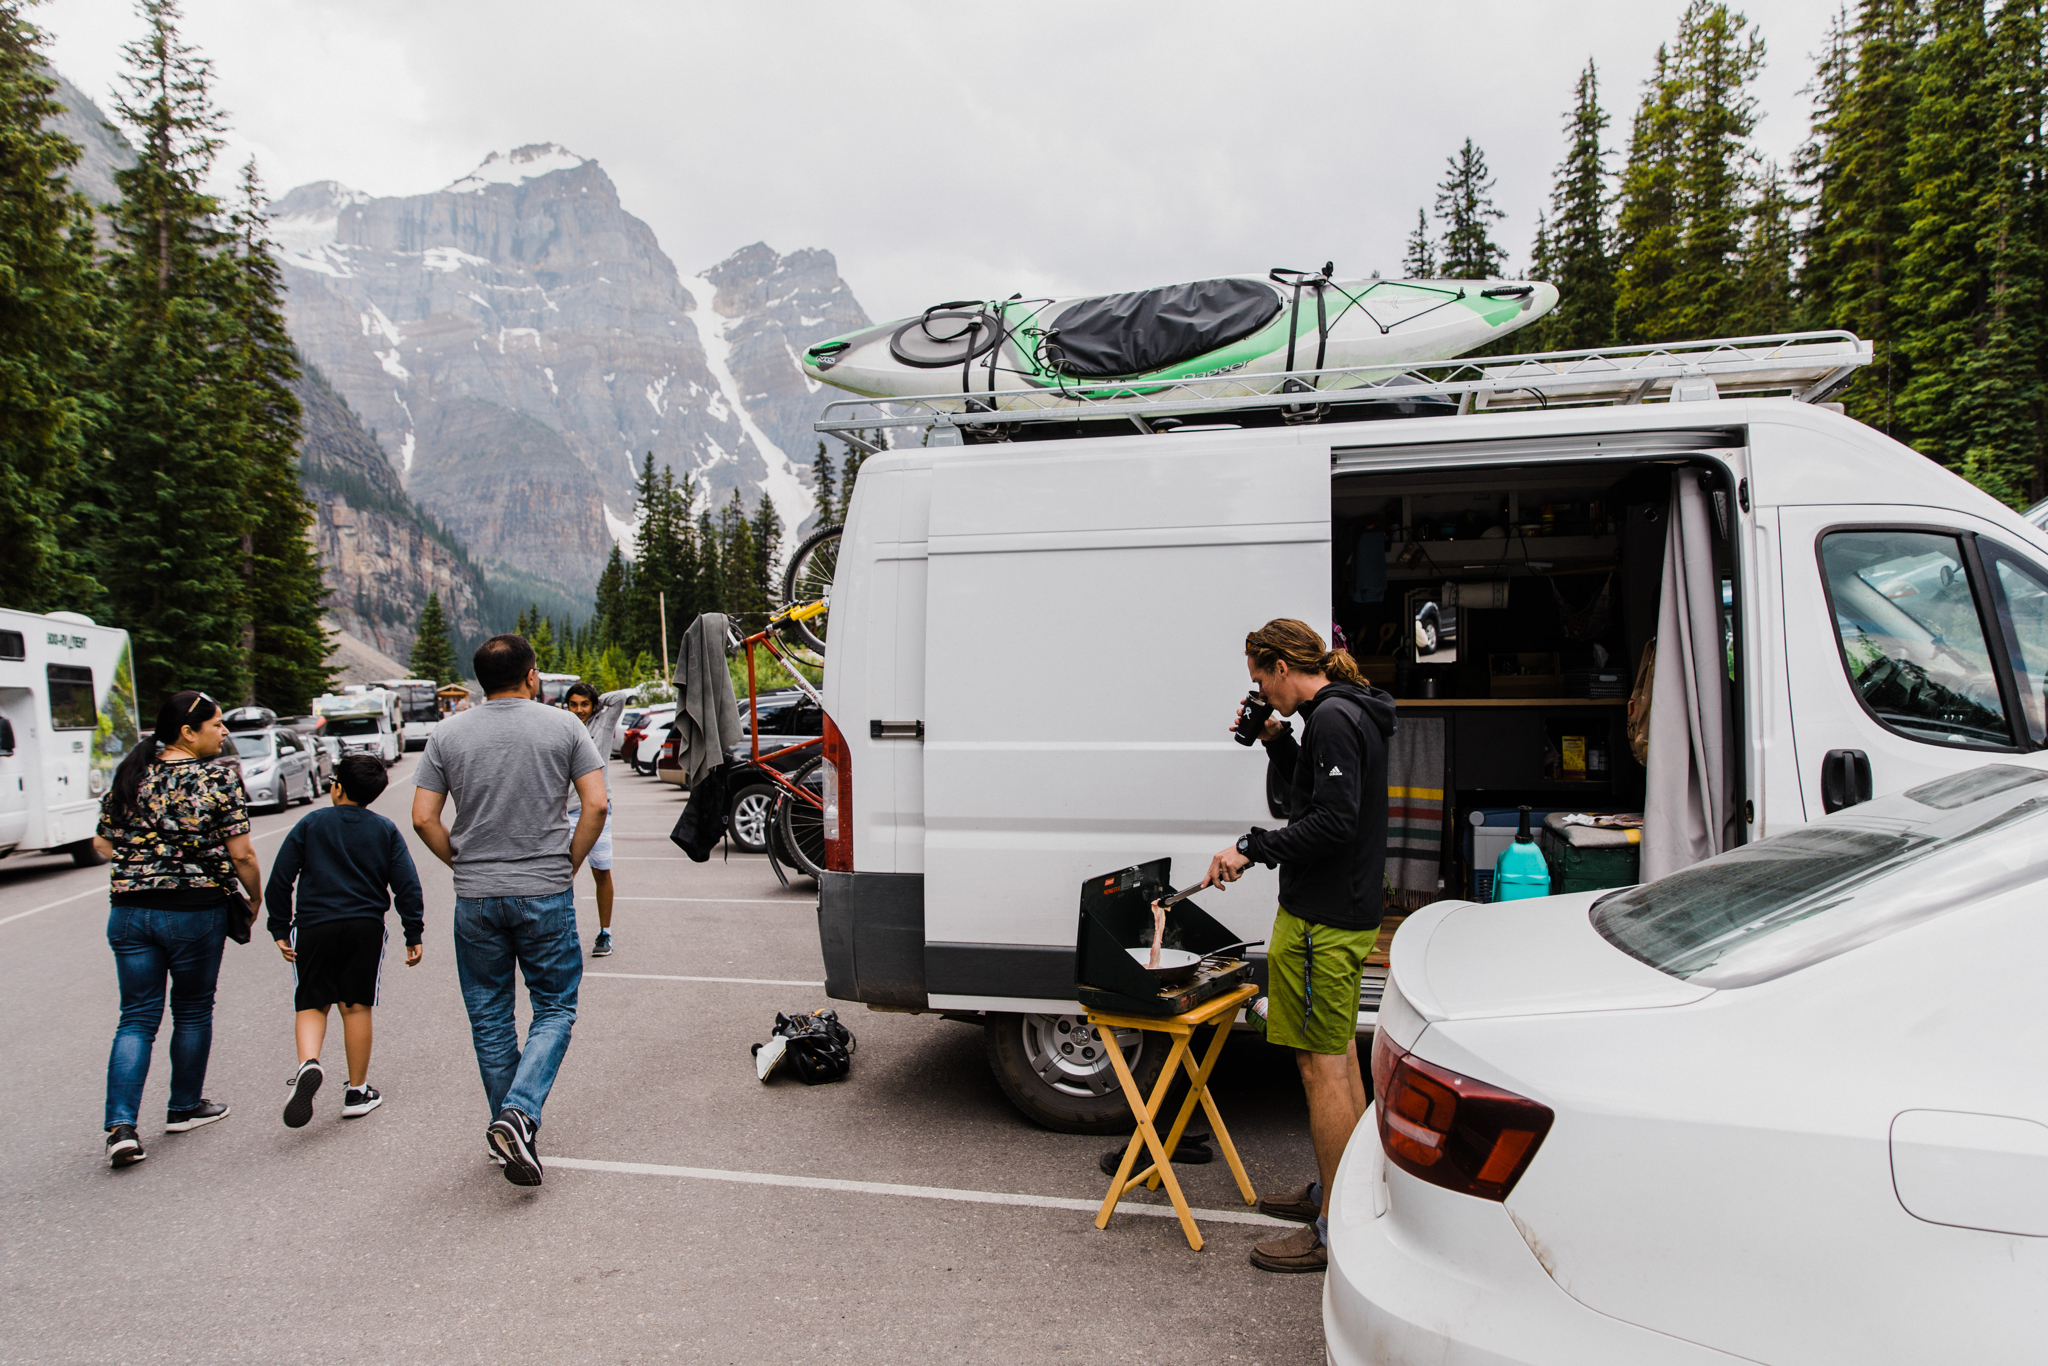 vanlife in canada | utah and california adventure elopement photographers | the hearnes adventure photography | www.thehearnes.com